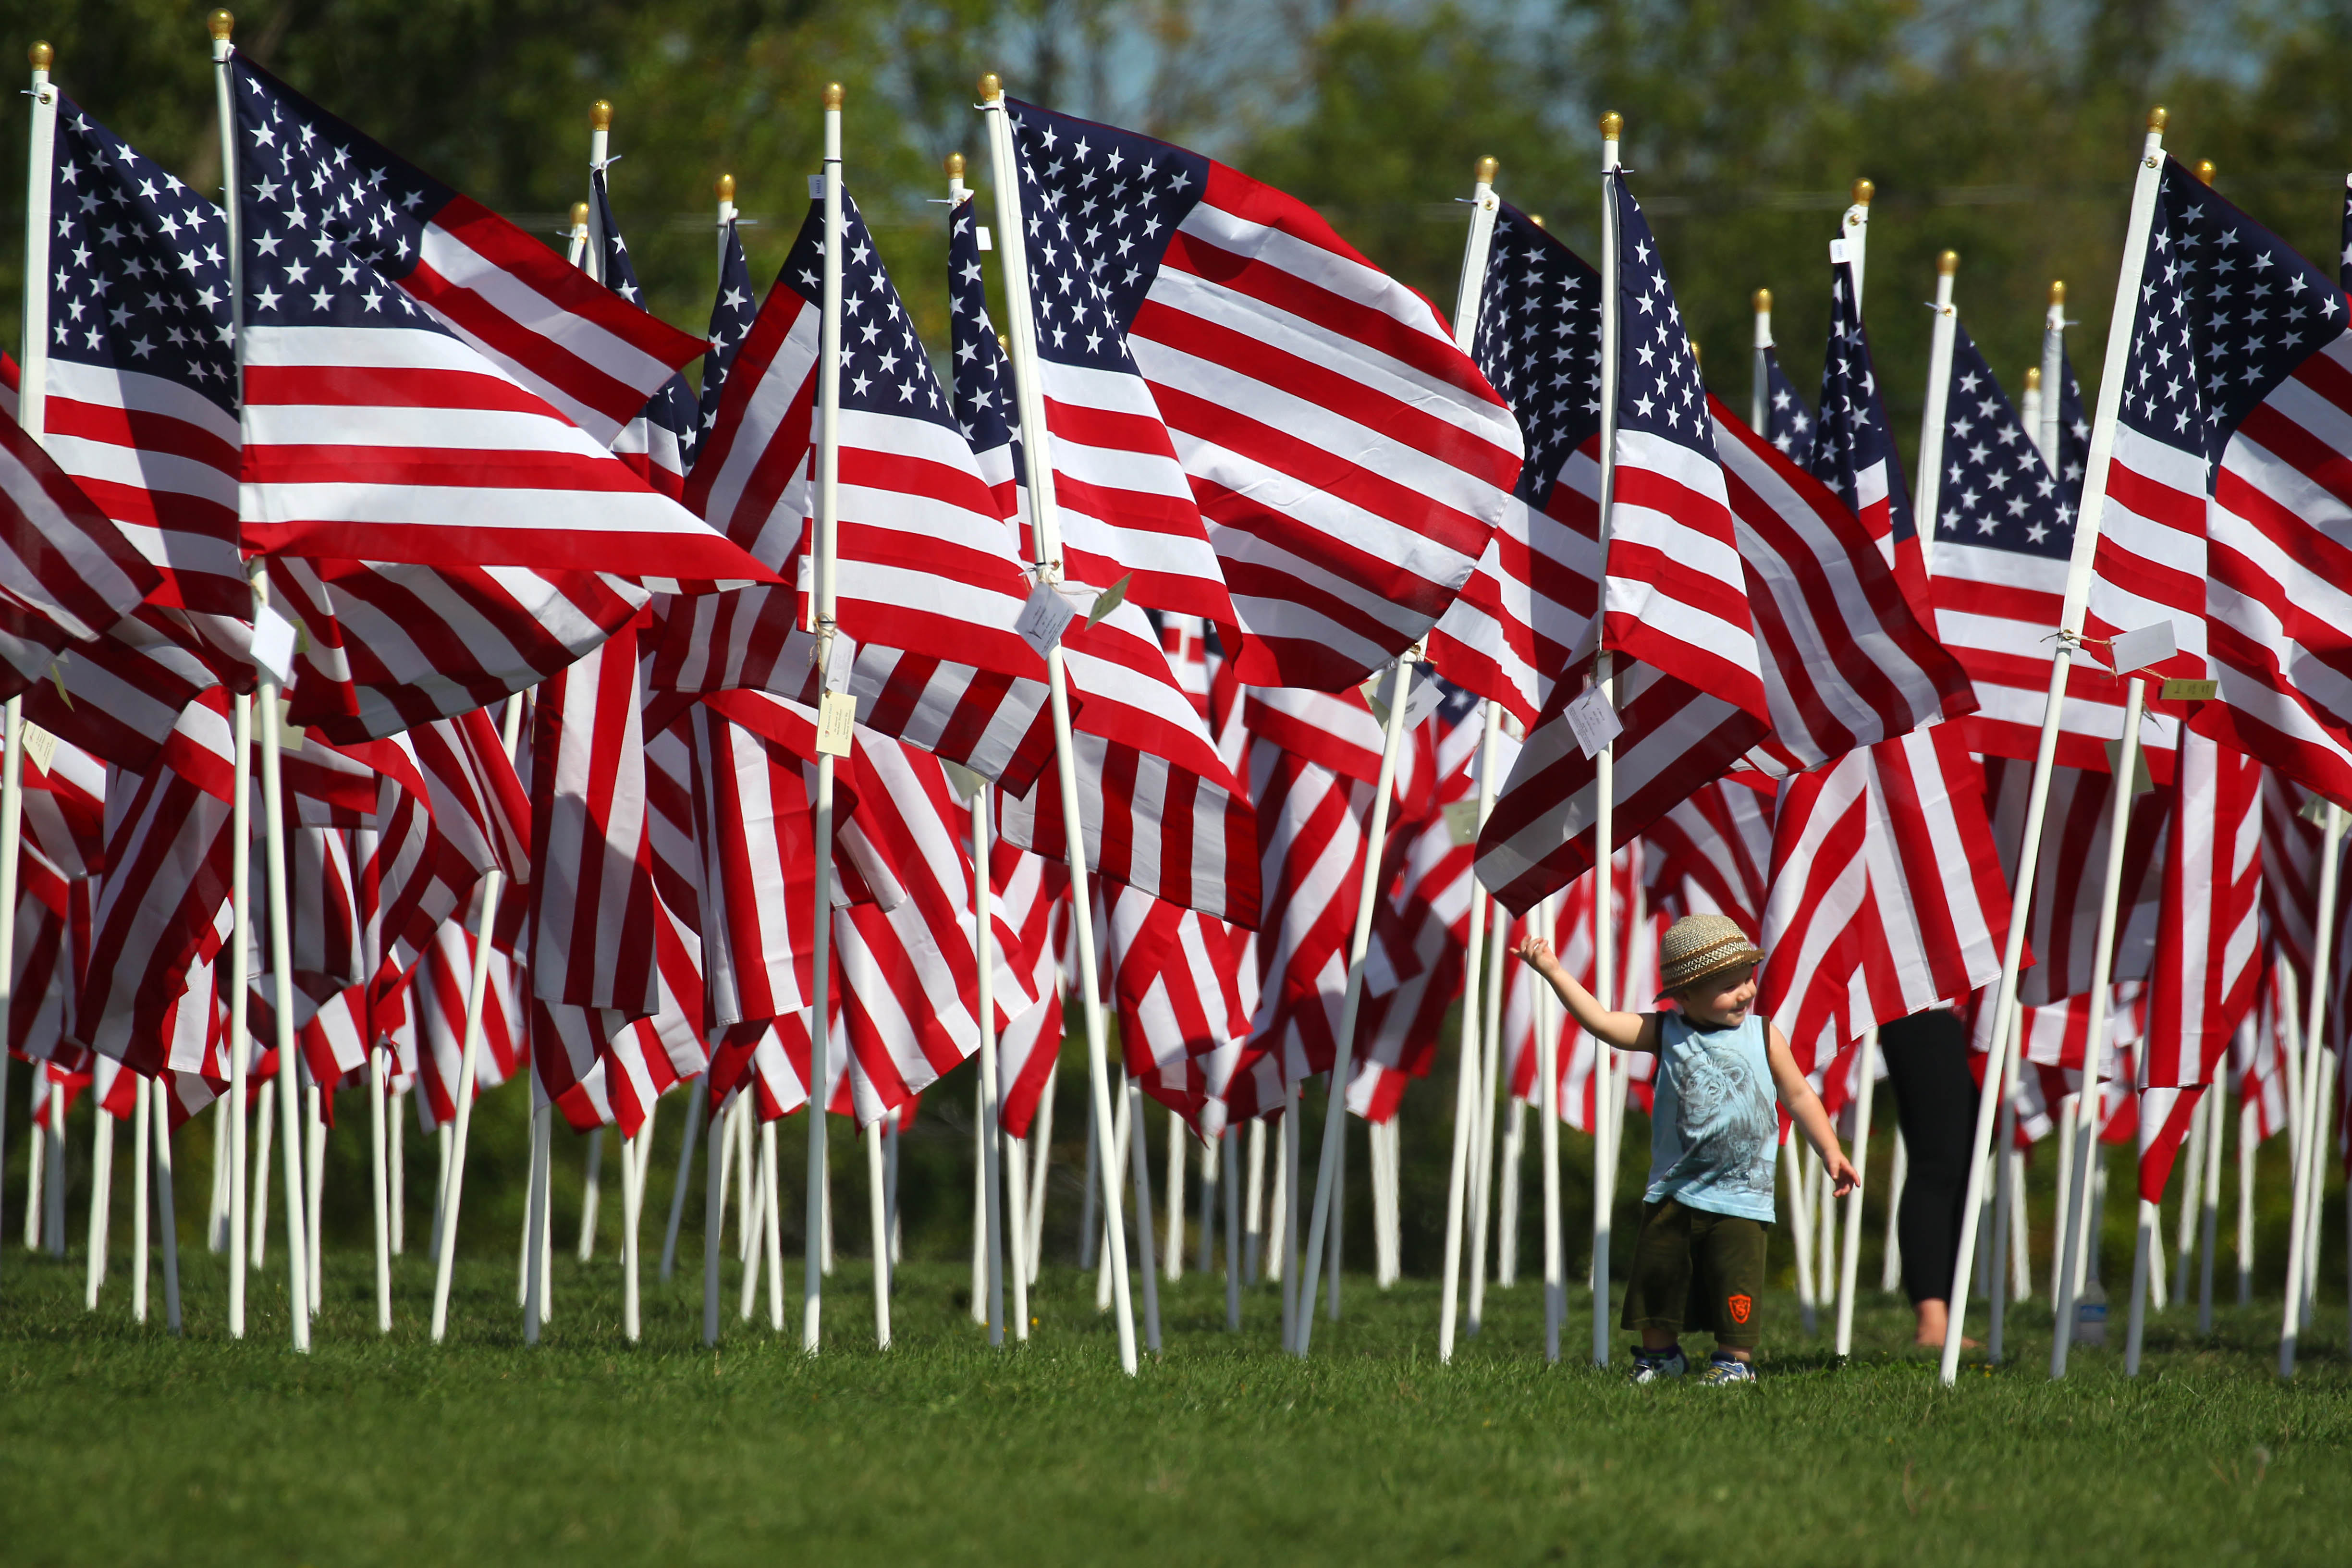 Gavin Bird walks with his grandmother Suzy Bird through 3000 American flags as a memorial called Healing Field to victims and first responders of 911 at Gratwick Park in North Tonawanda Friday, September 9, 2016.     (Mark Mulville/Buffalo News)